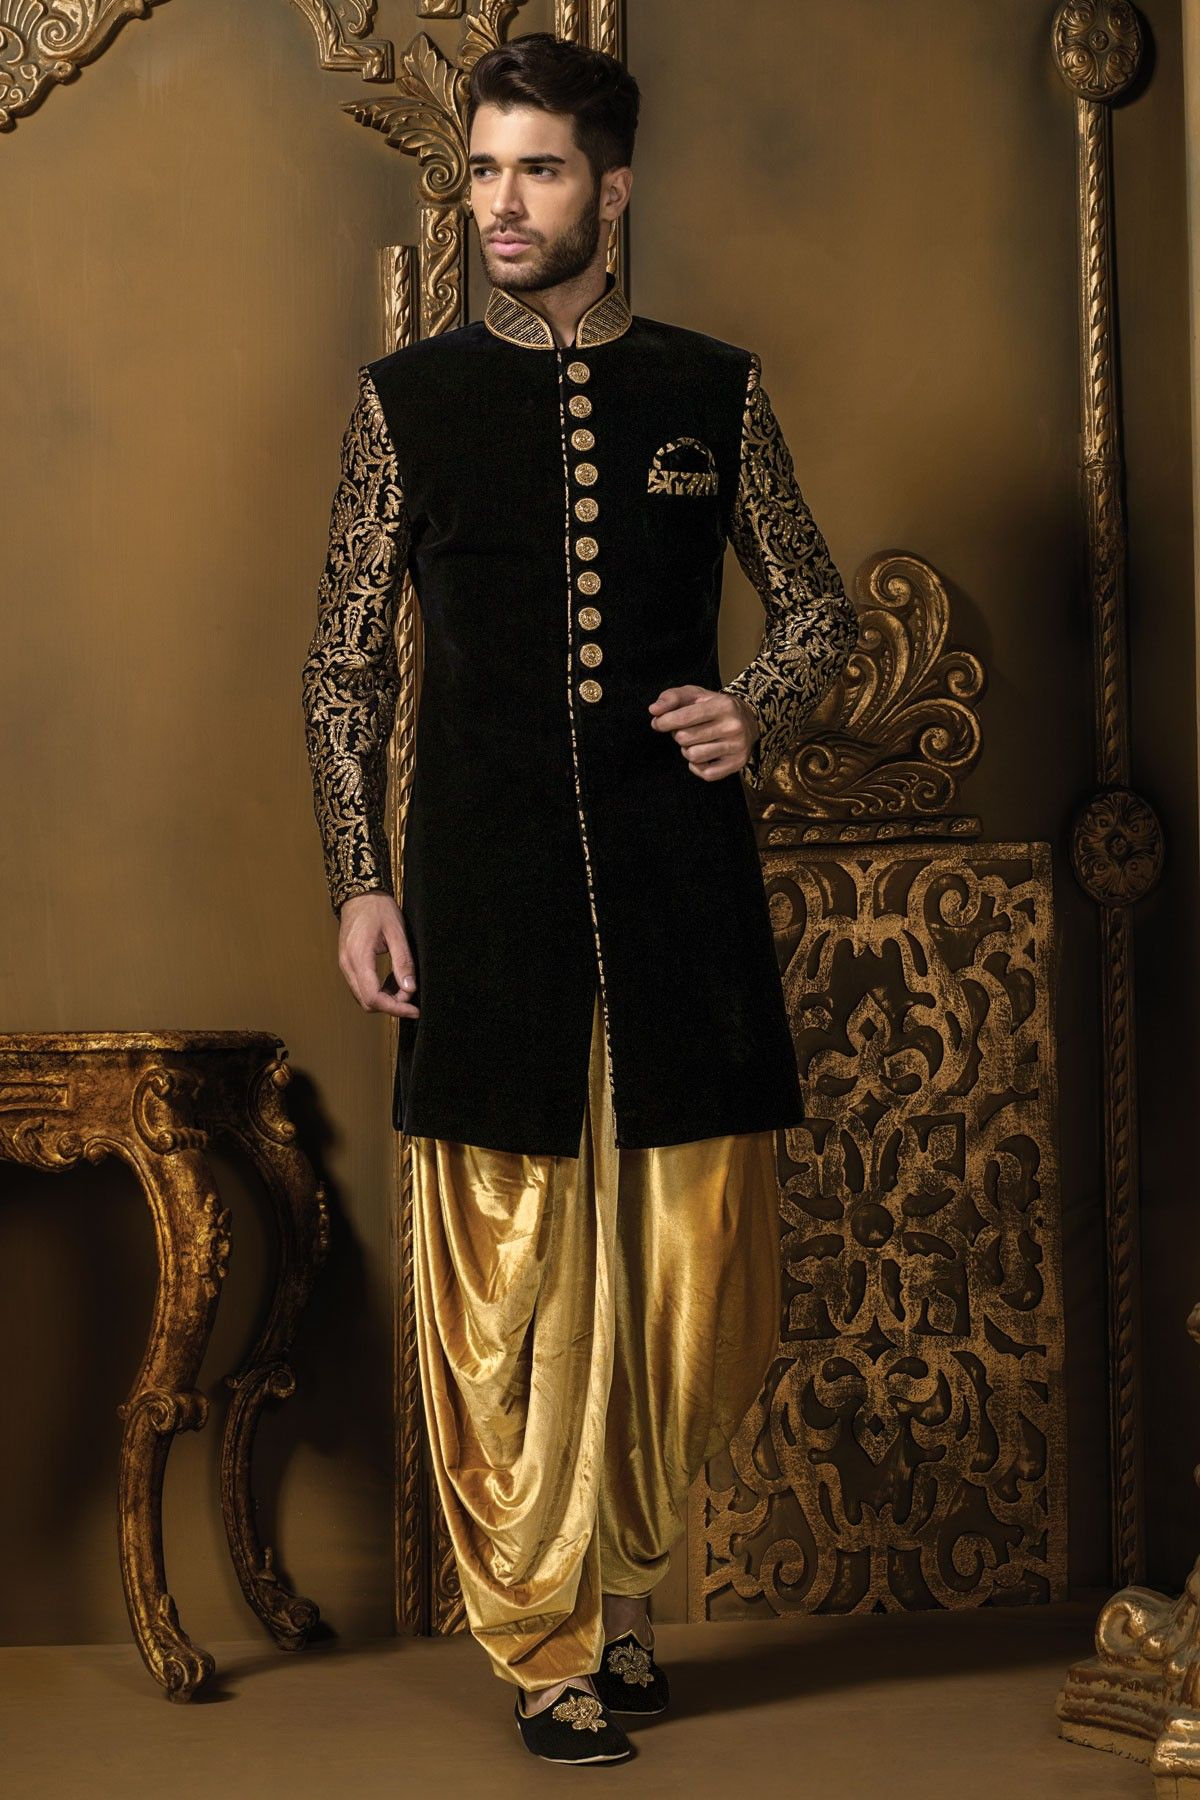 ff83618519 Buy Black & gold velvet alluring sherwani with mandarin collar & full  sleeves Online